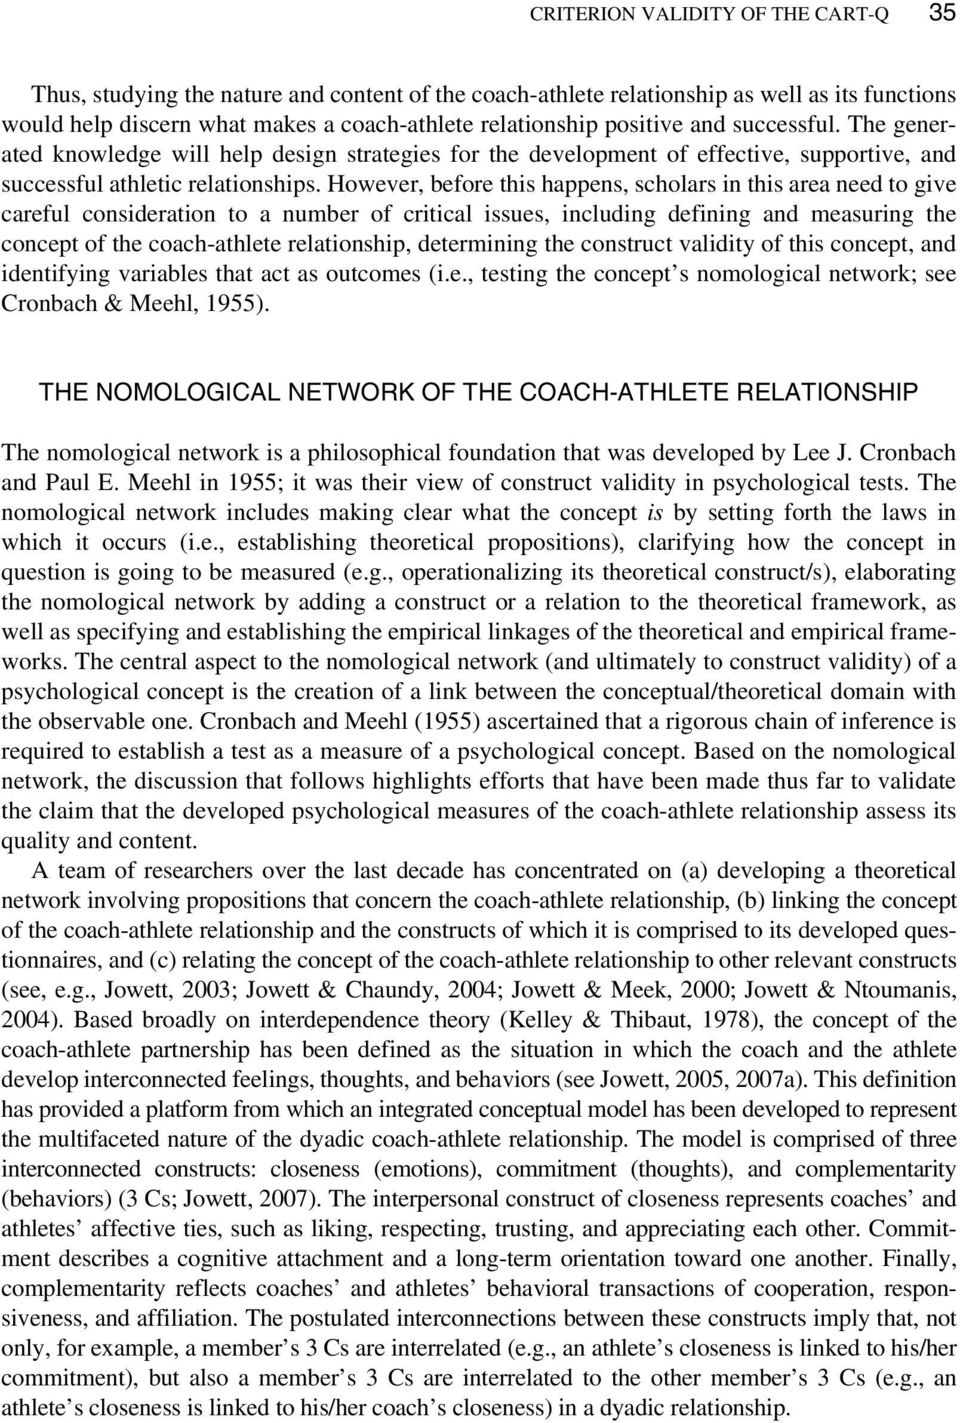 However, before this happens, scholars in this area need to give careful consideration to a number of critical issues, including defining and measuring the concept of the coach-athlete relationship,